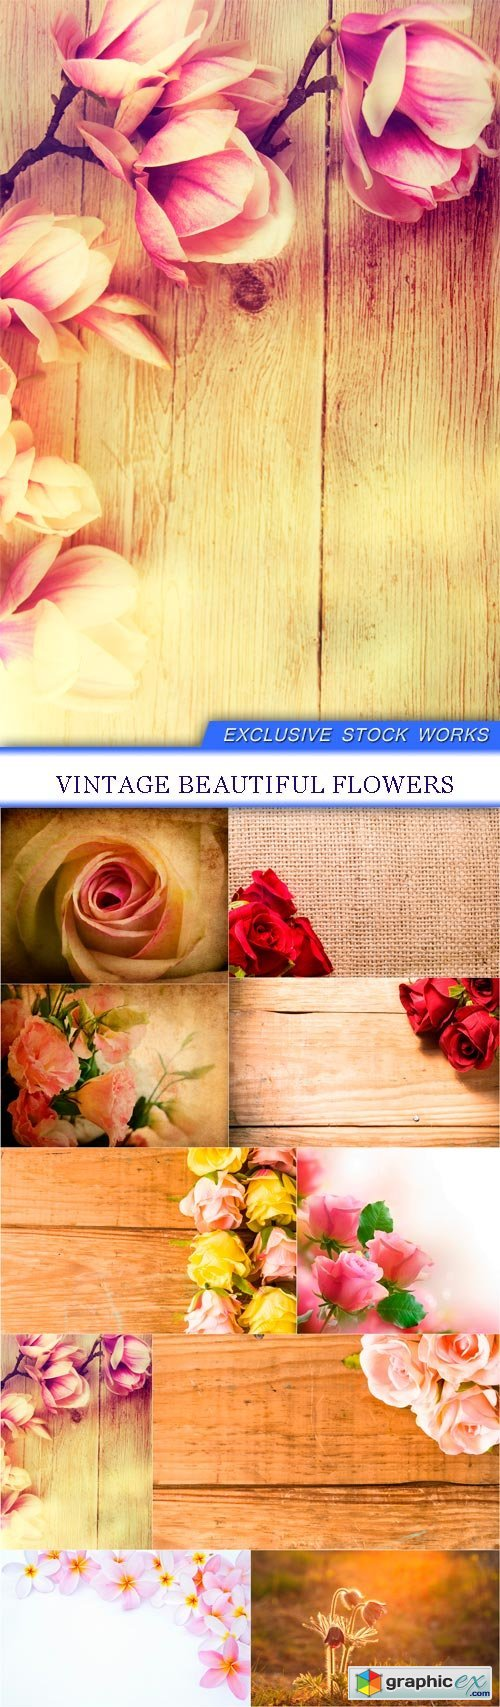 Vintage beautiful flowers 10x JPEG